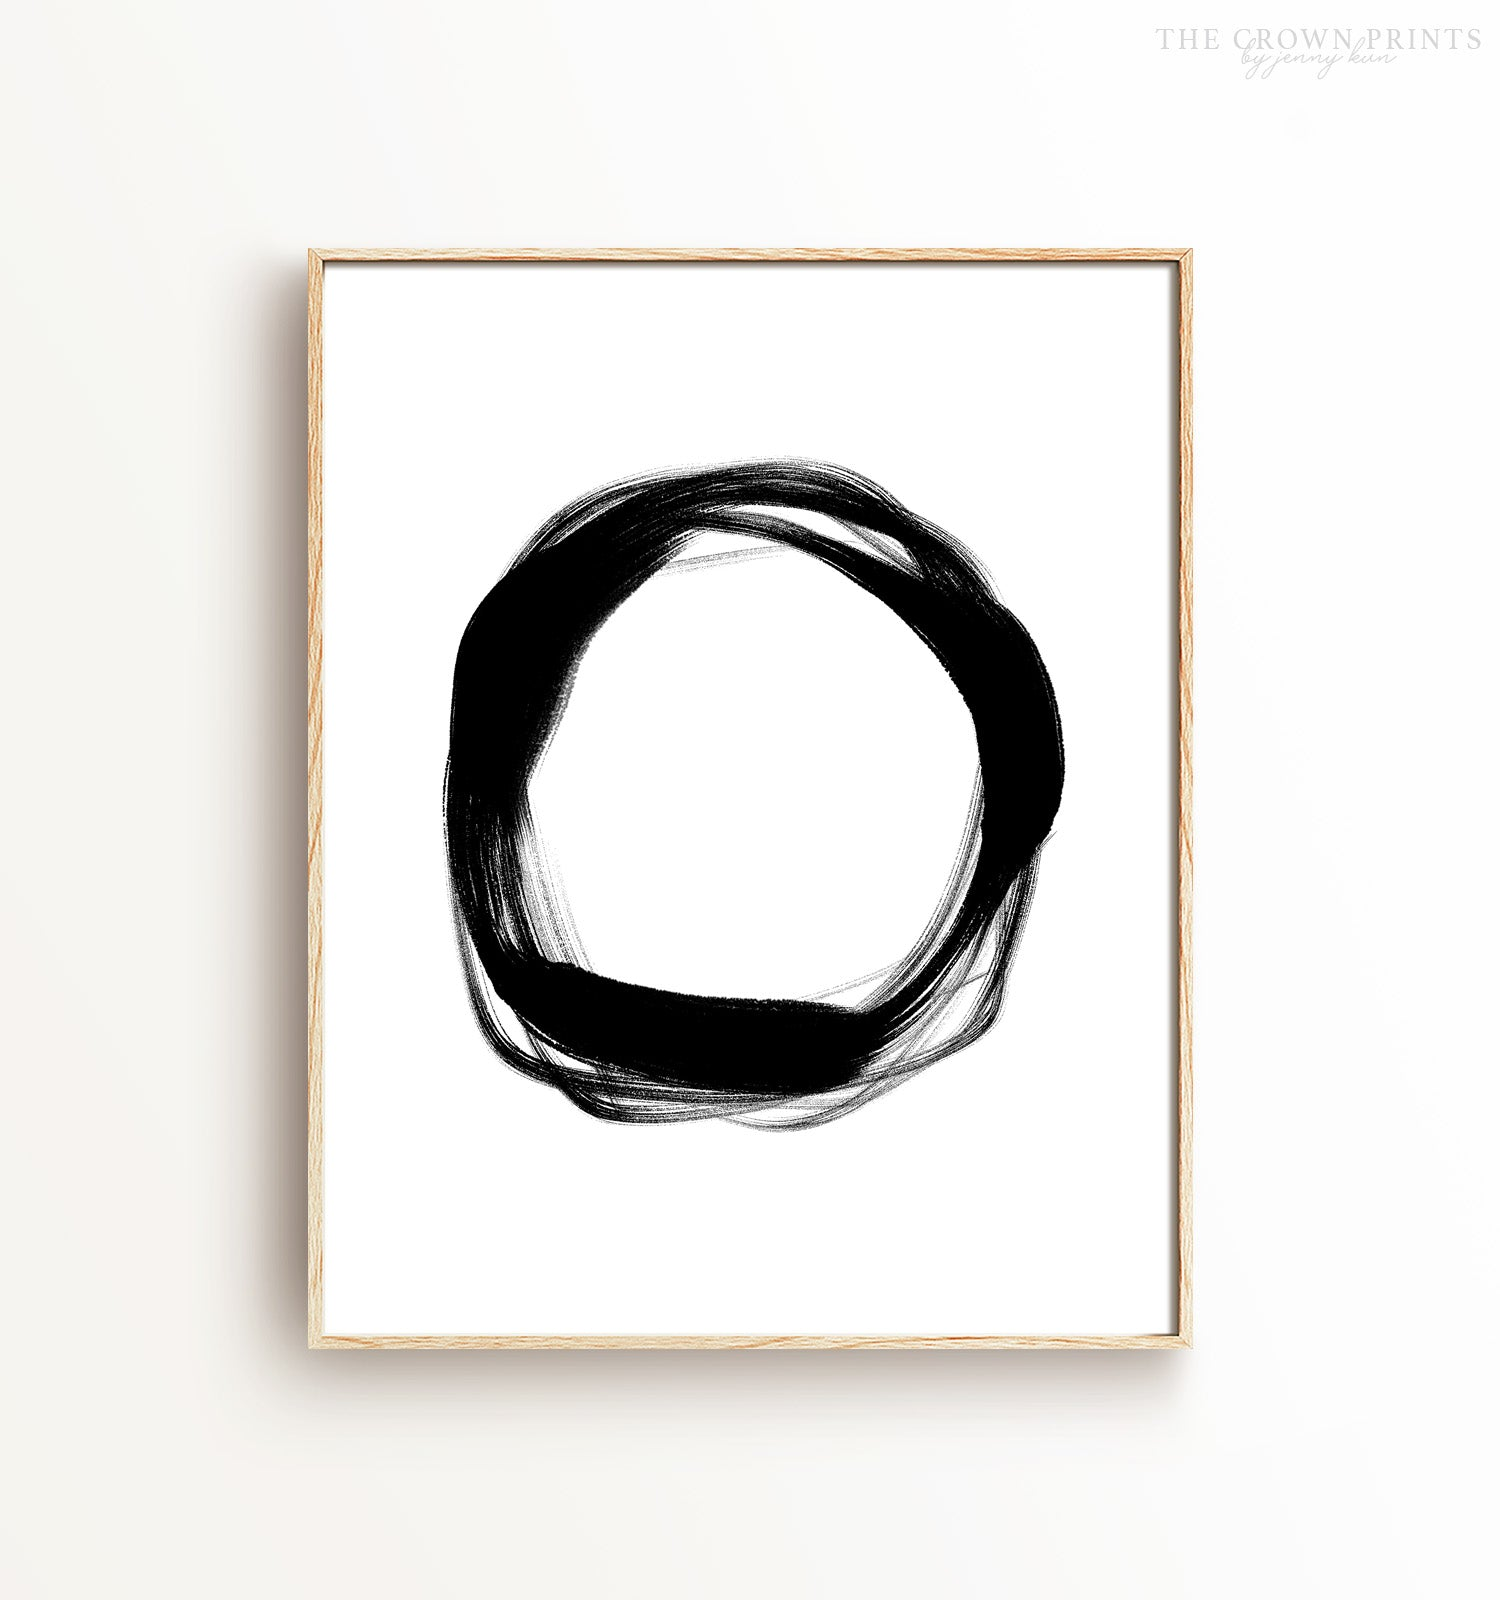 Abstract Black & White Ring - The Crown Prints